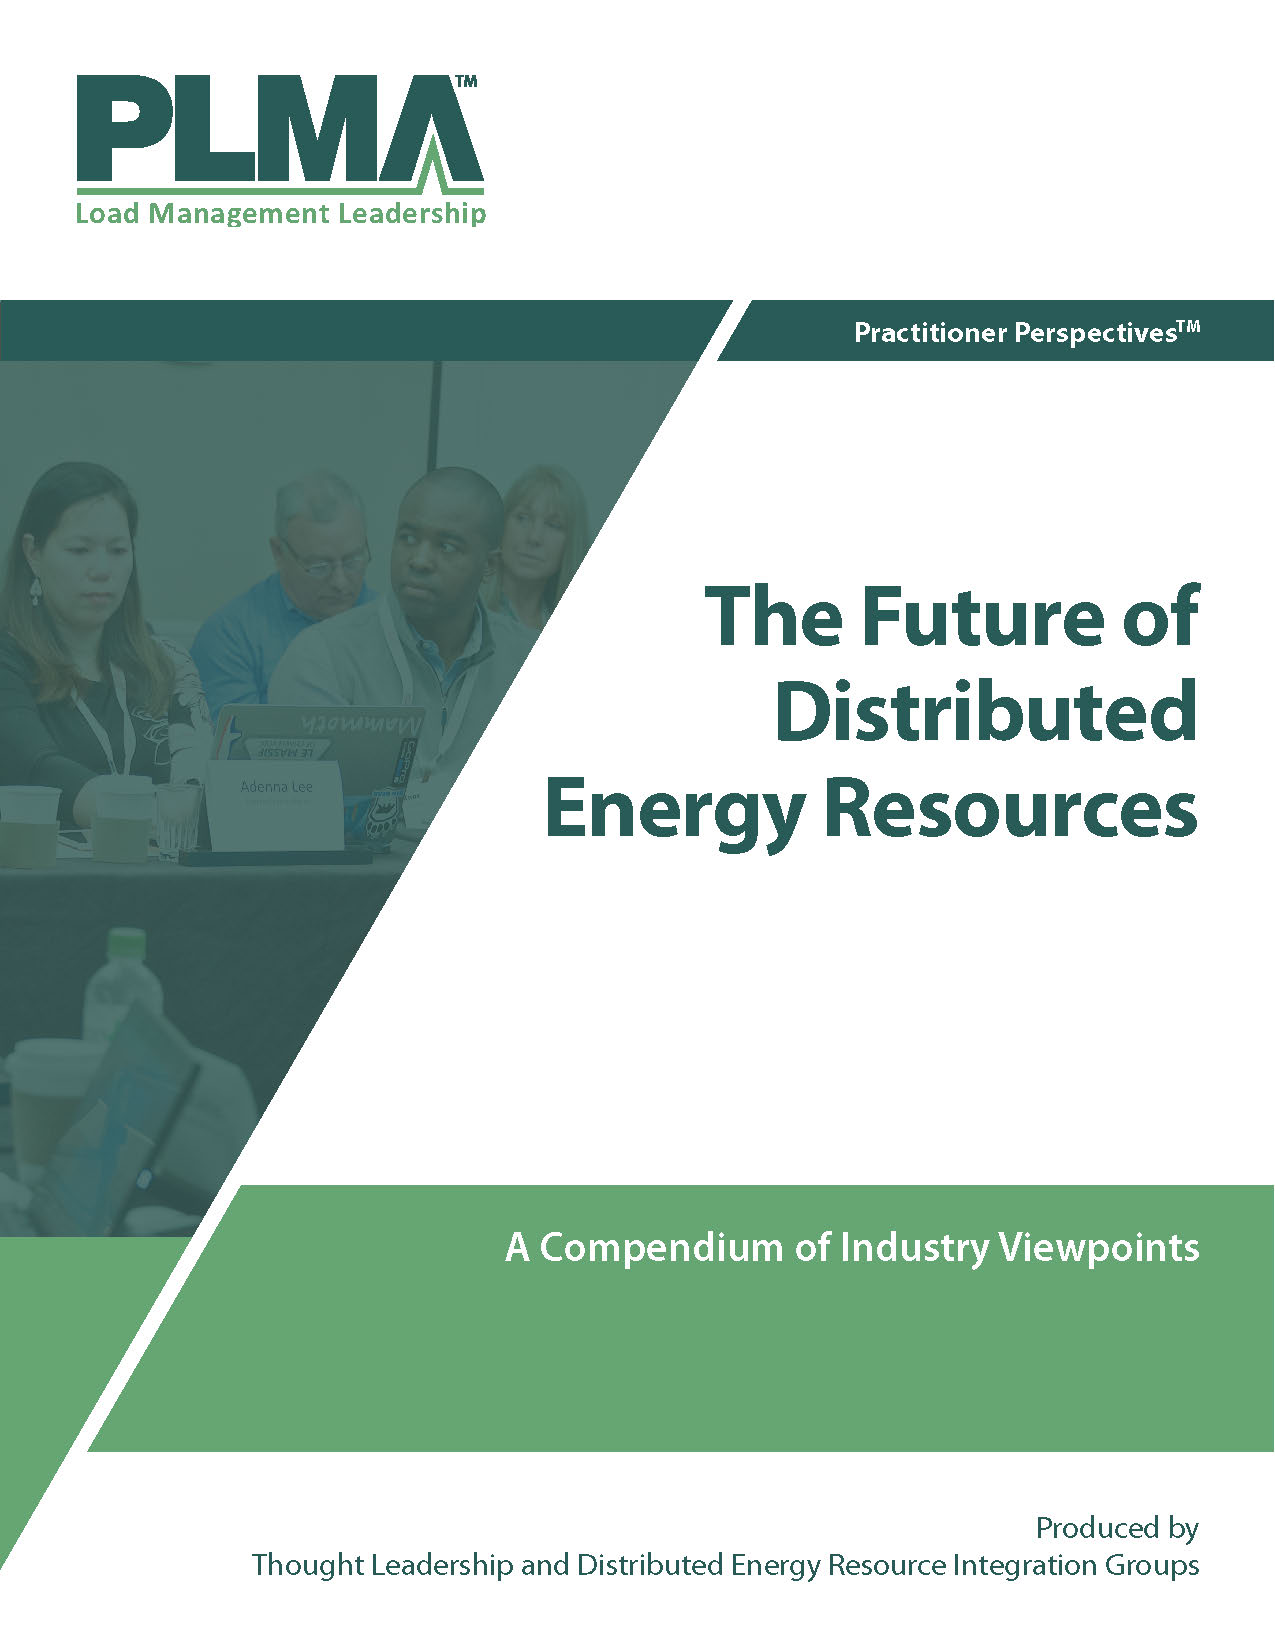 The Future of Distributed Energy Resources cover